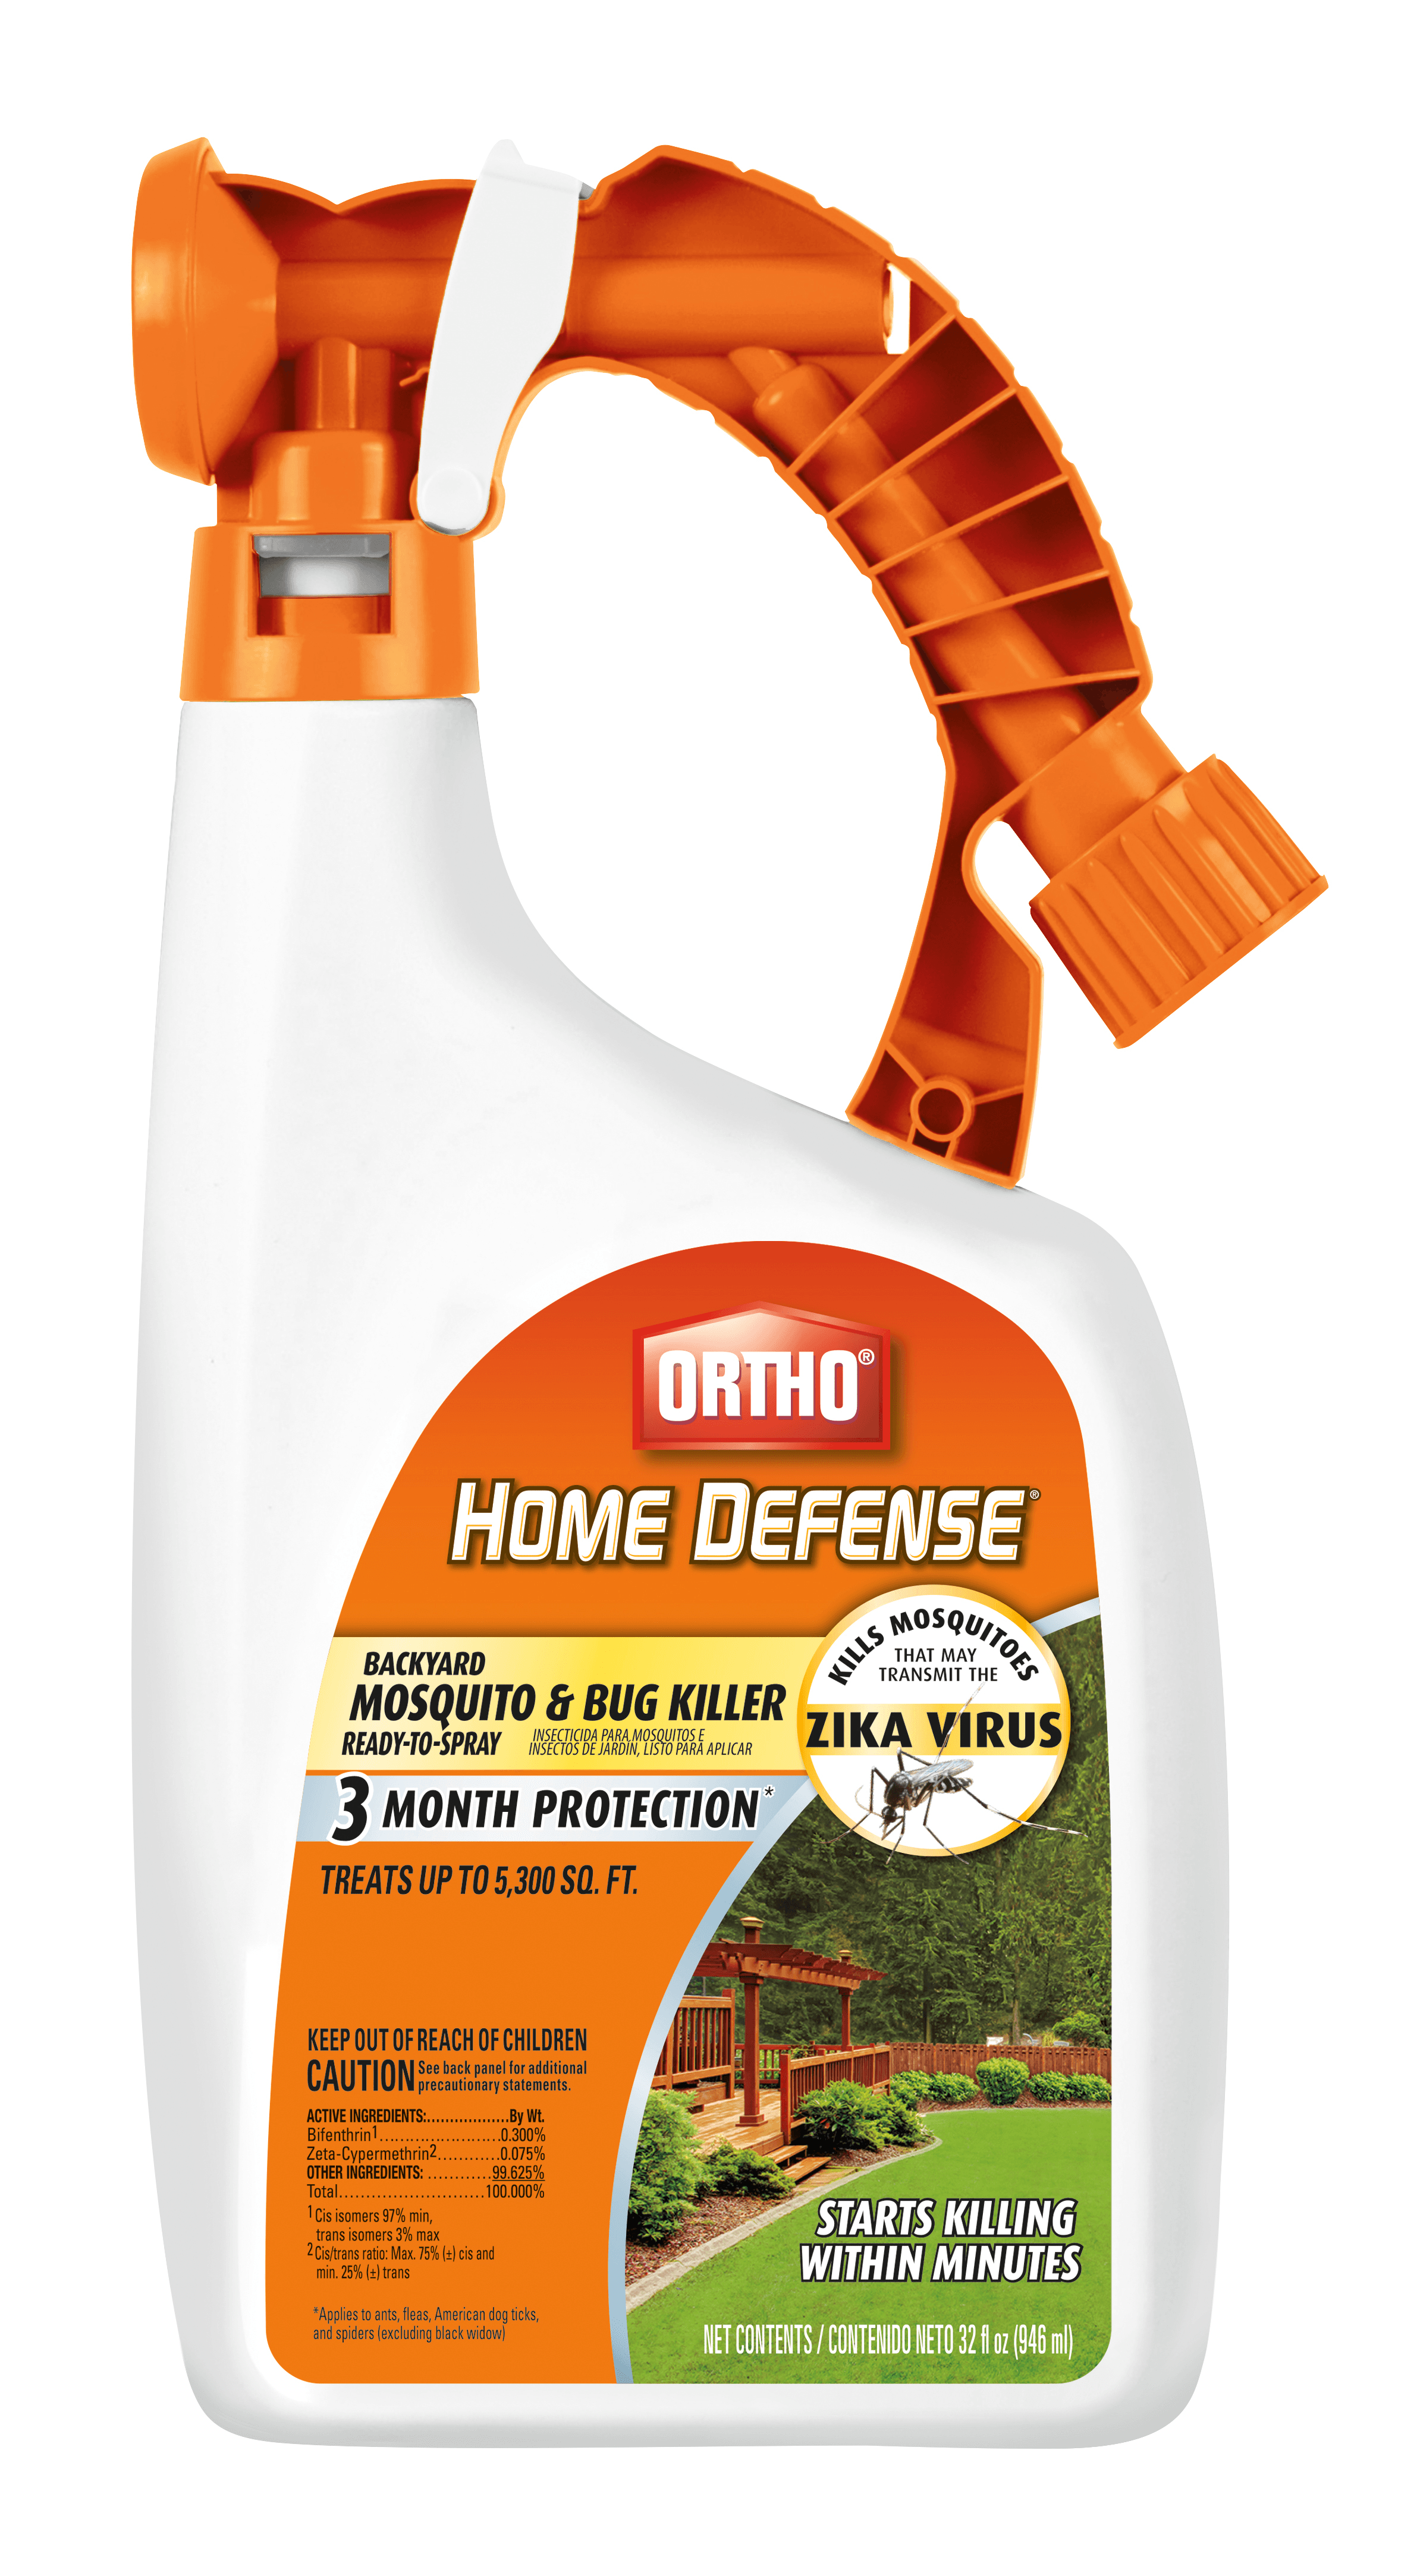 Ortho Home Defense Backyard Mosquito And Bug Killer Ready To Spray